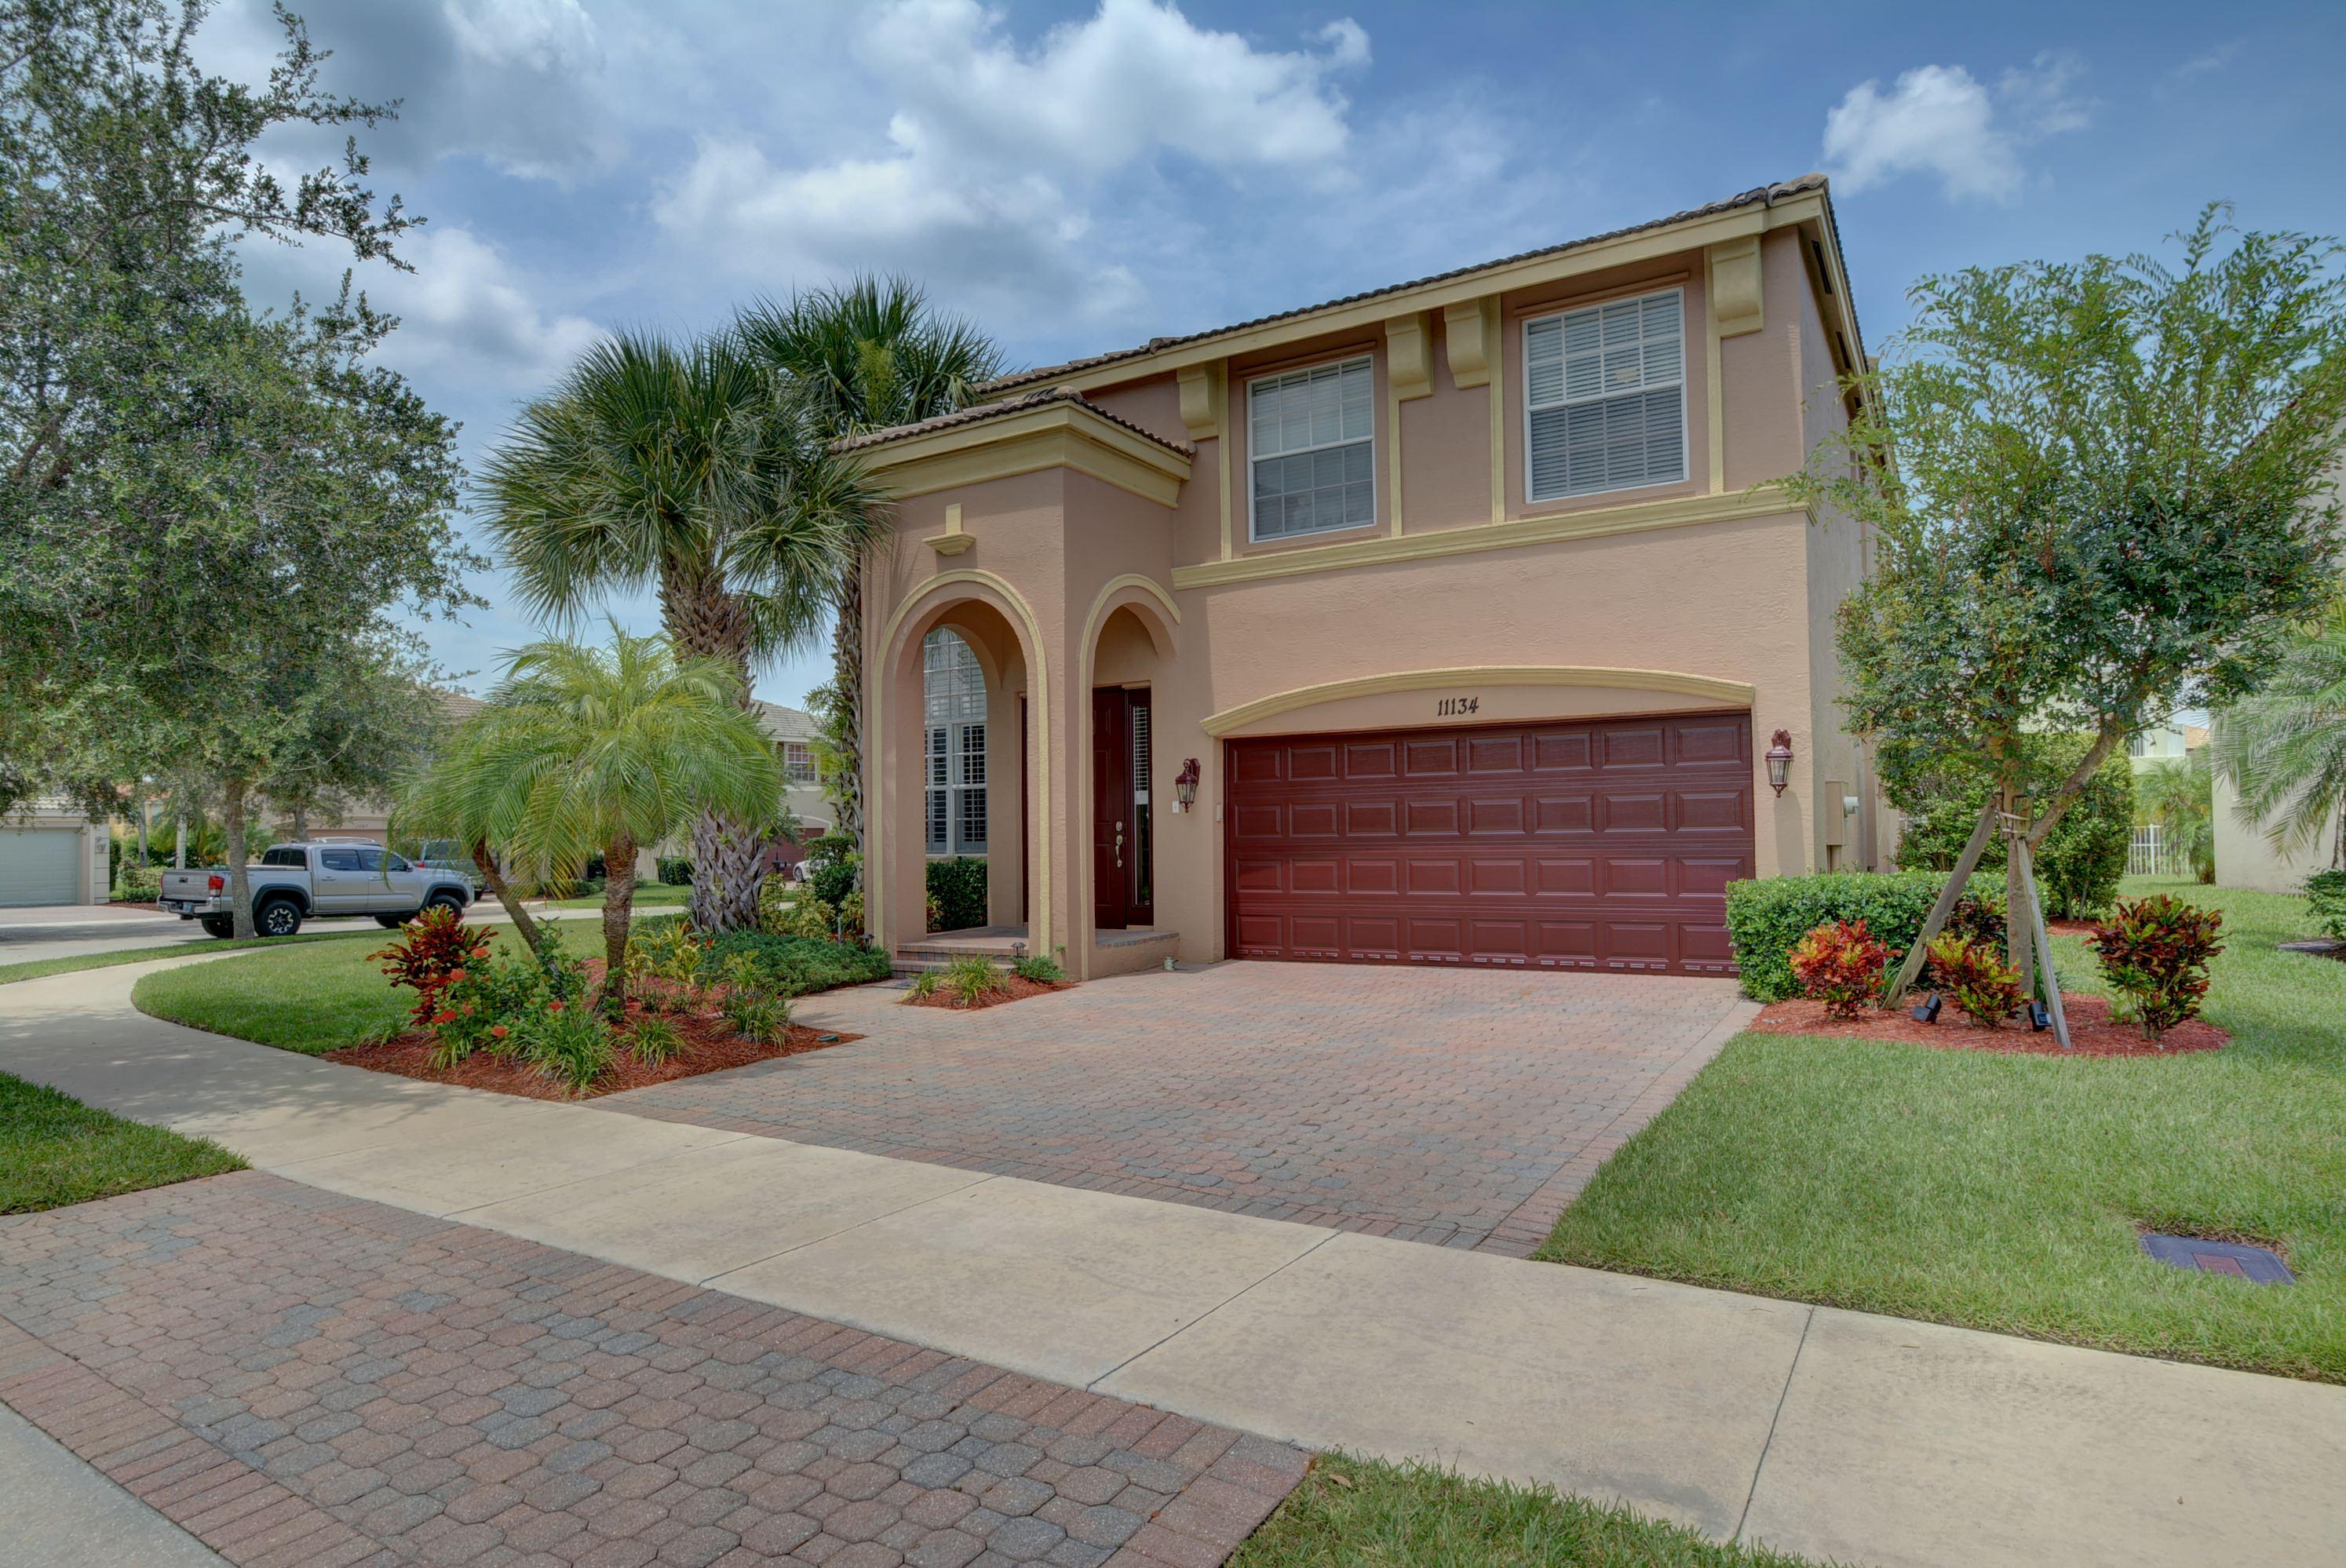 Port Saint Lucie Homes for Sale -  Gated,  11134 SW Springtree Terrace